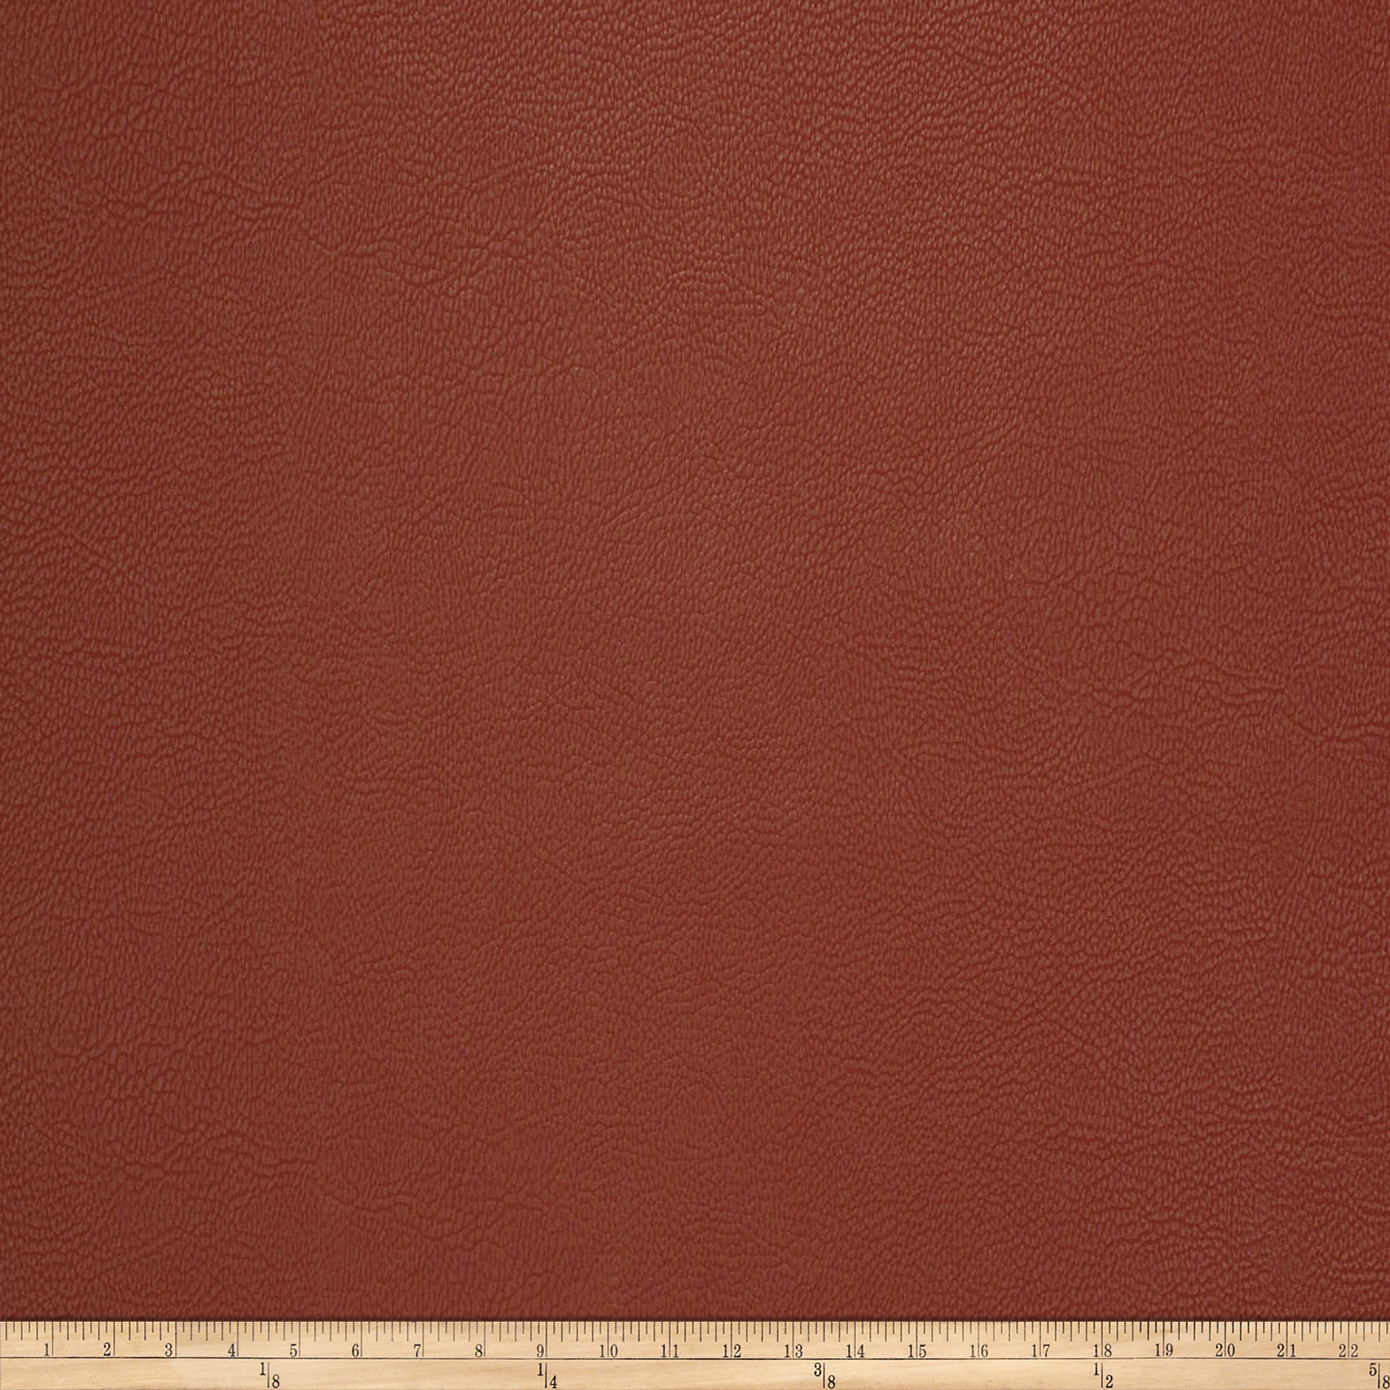 Fabricut Gold Faux Leather Brick